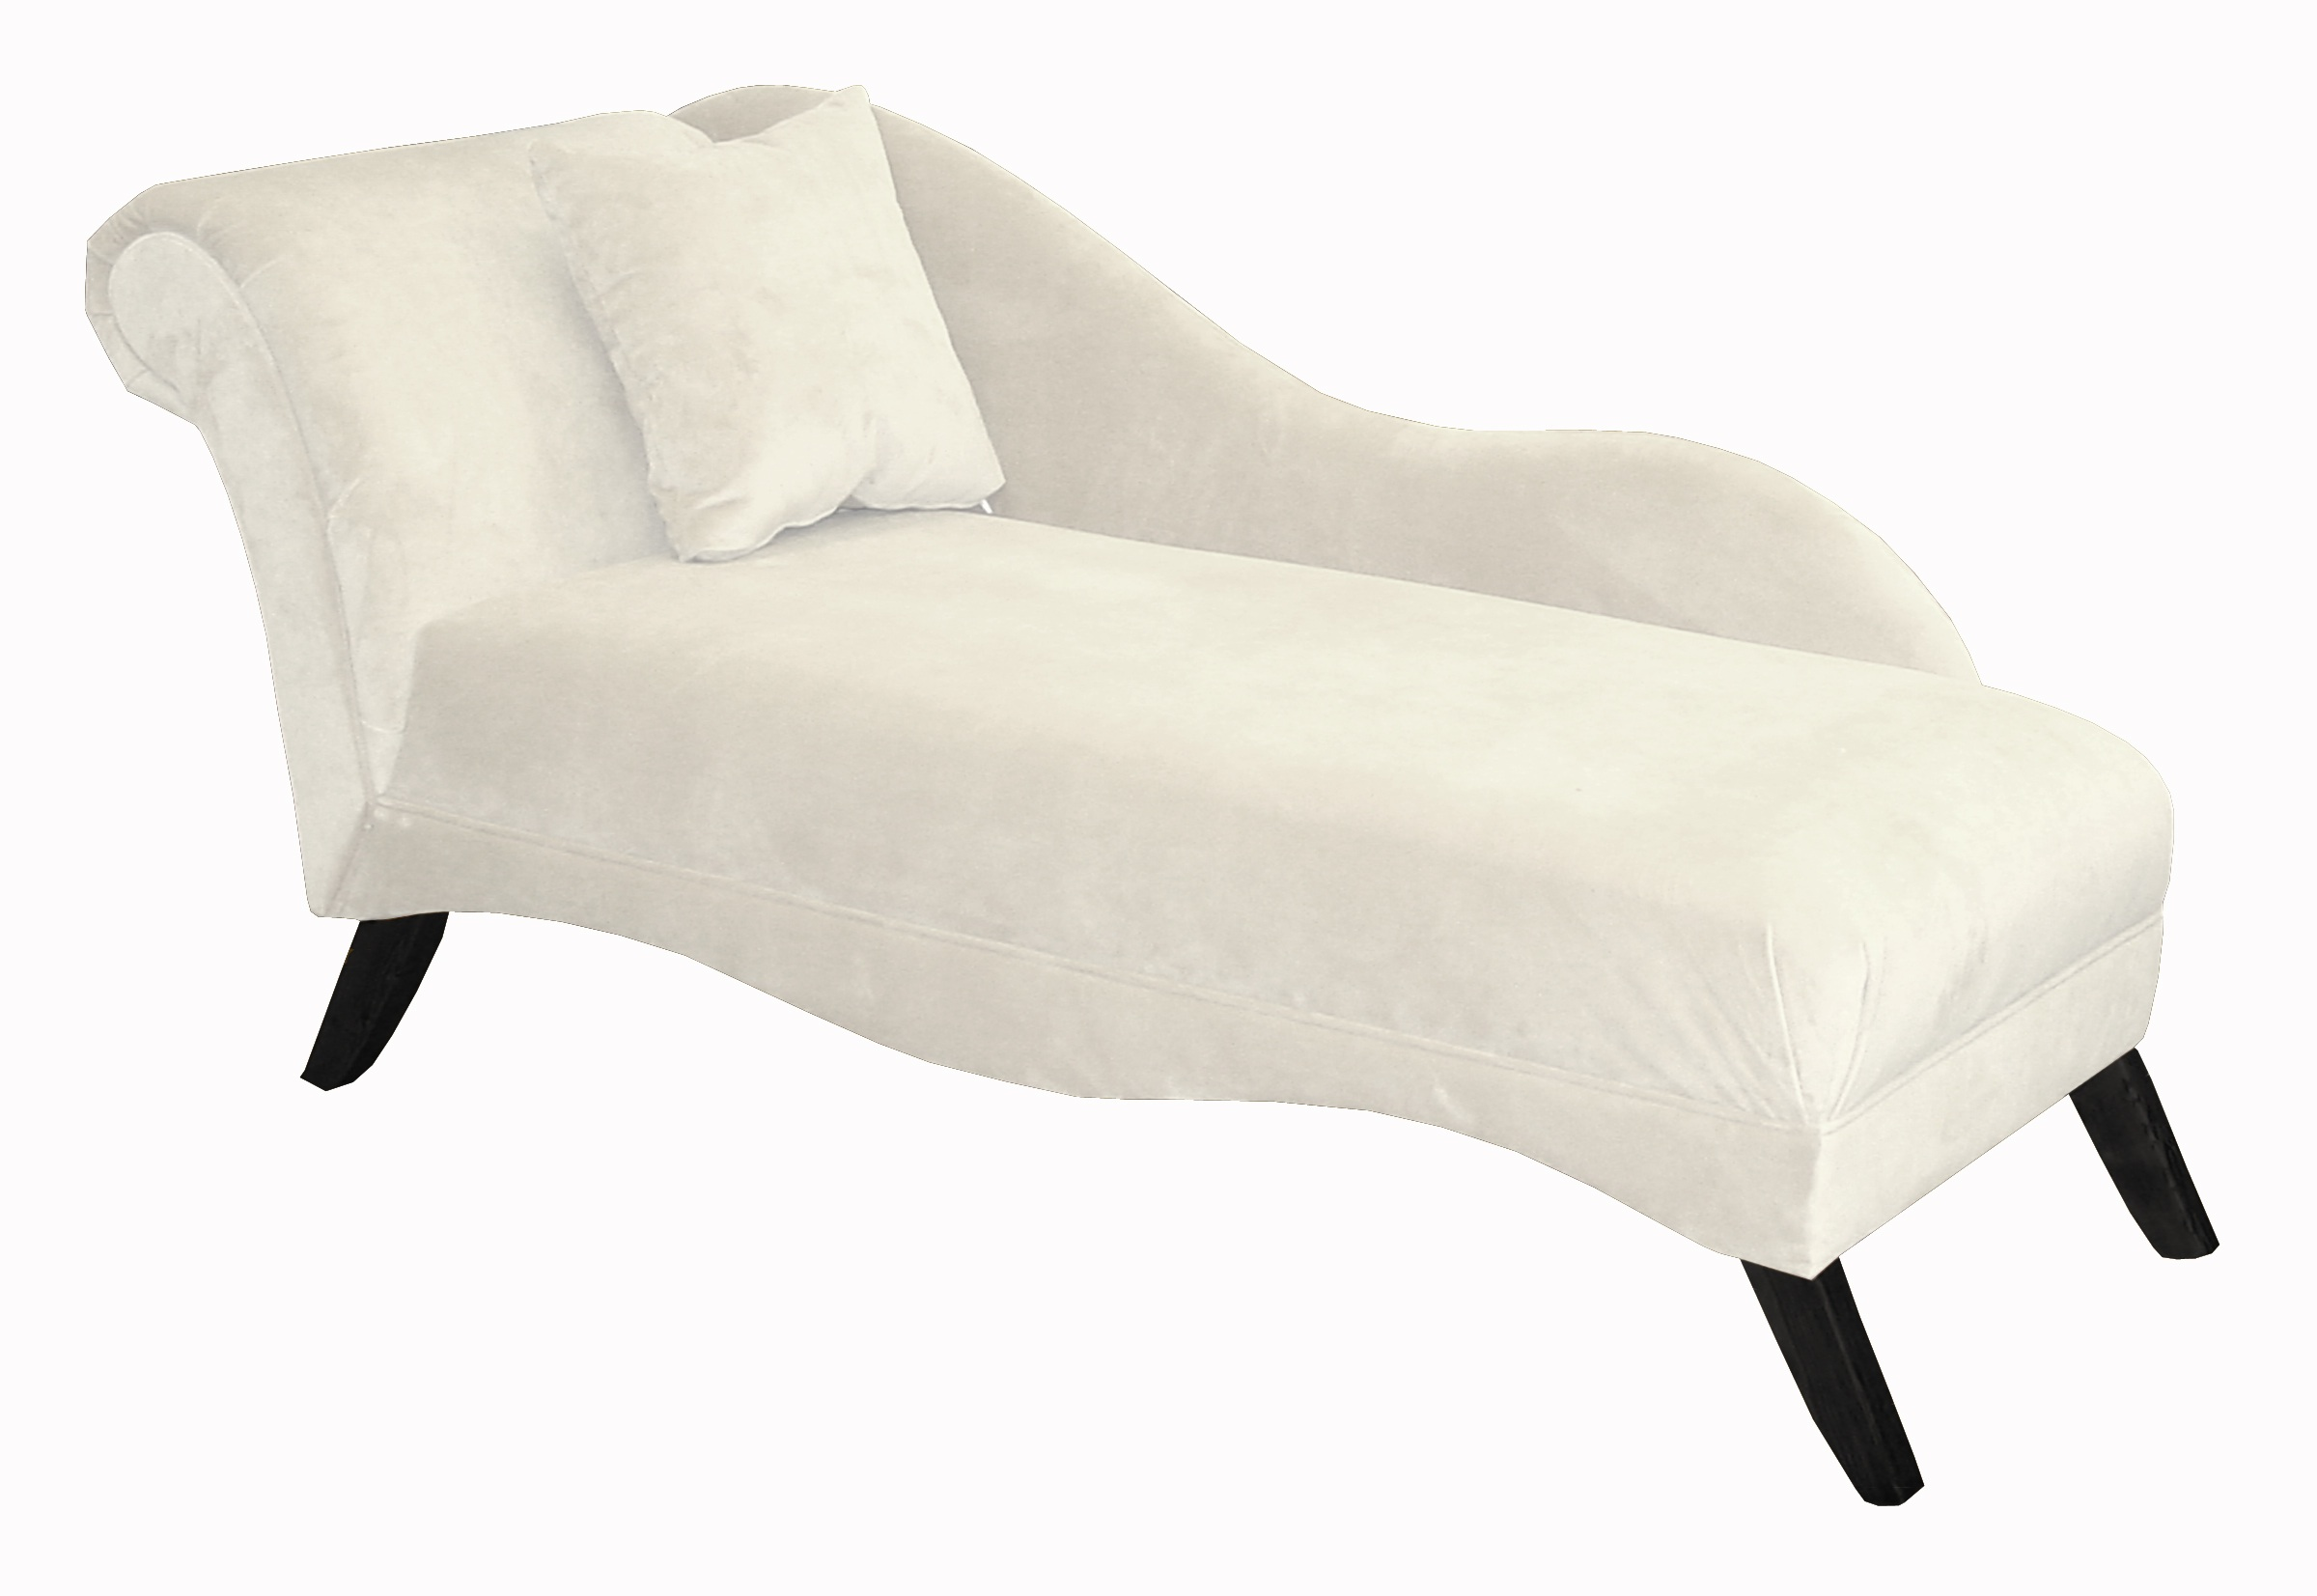 White Chaise Lounge Chair images